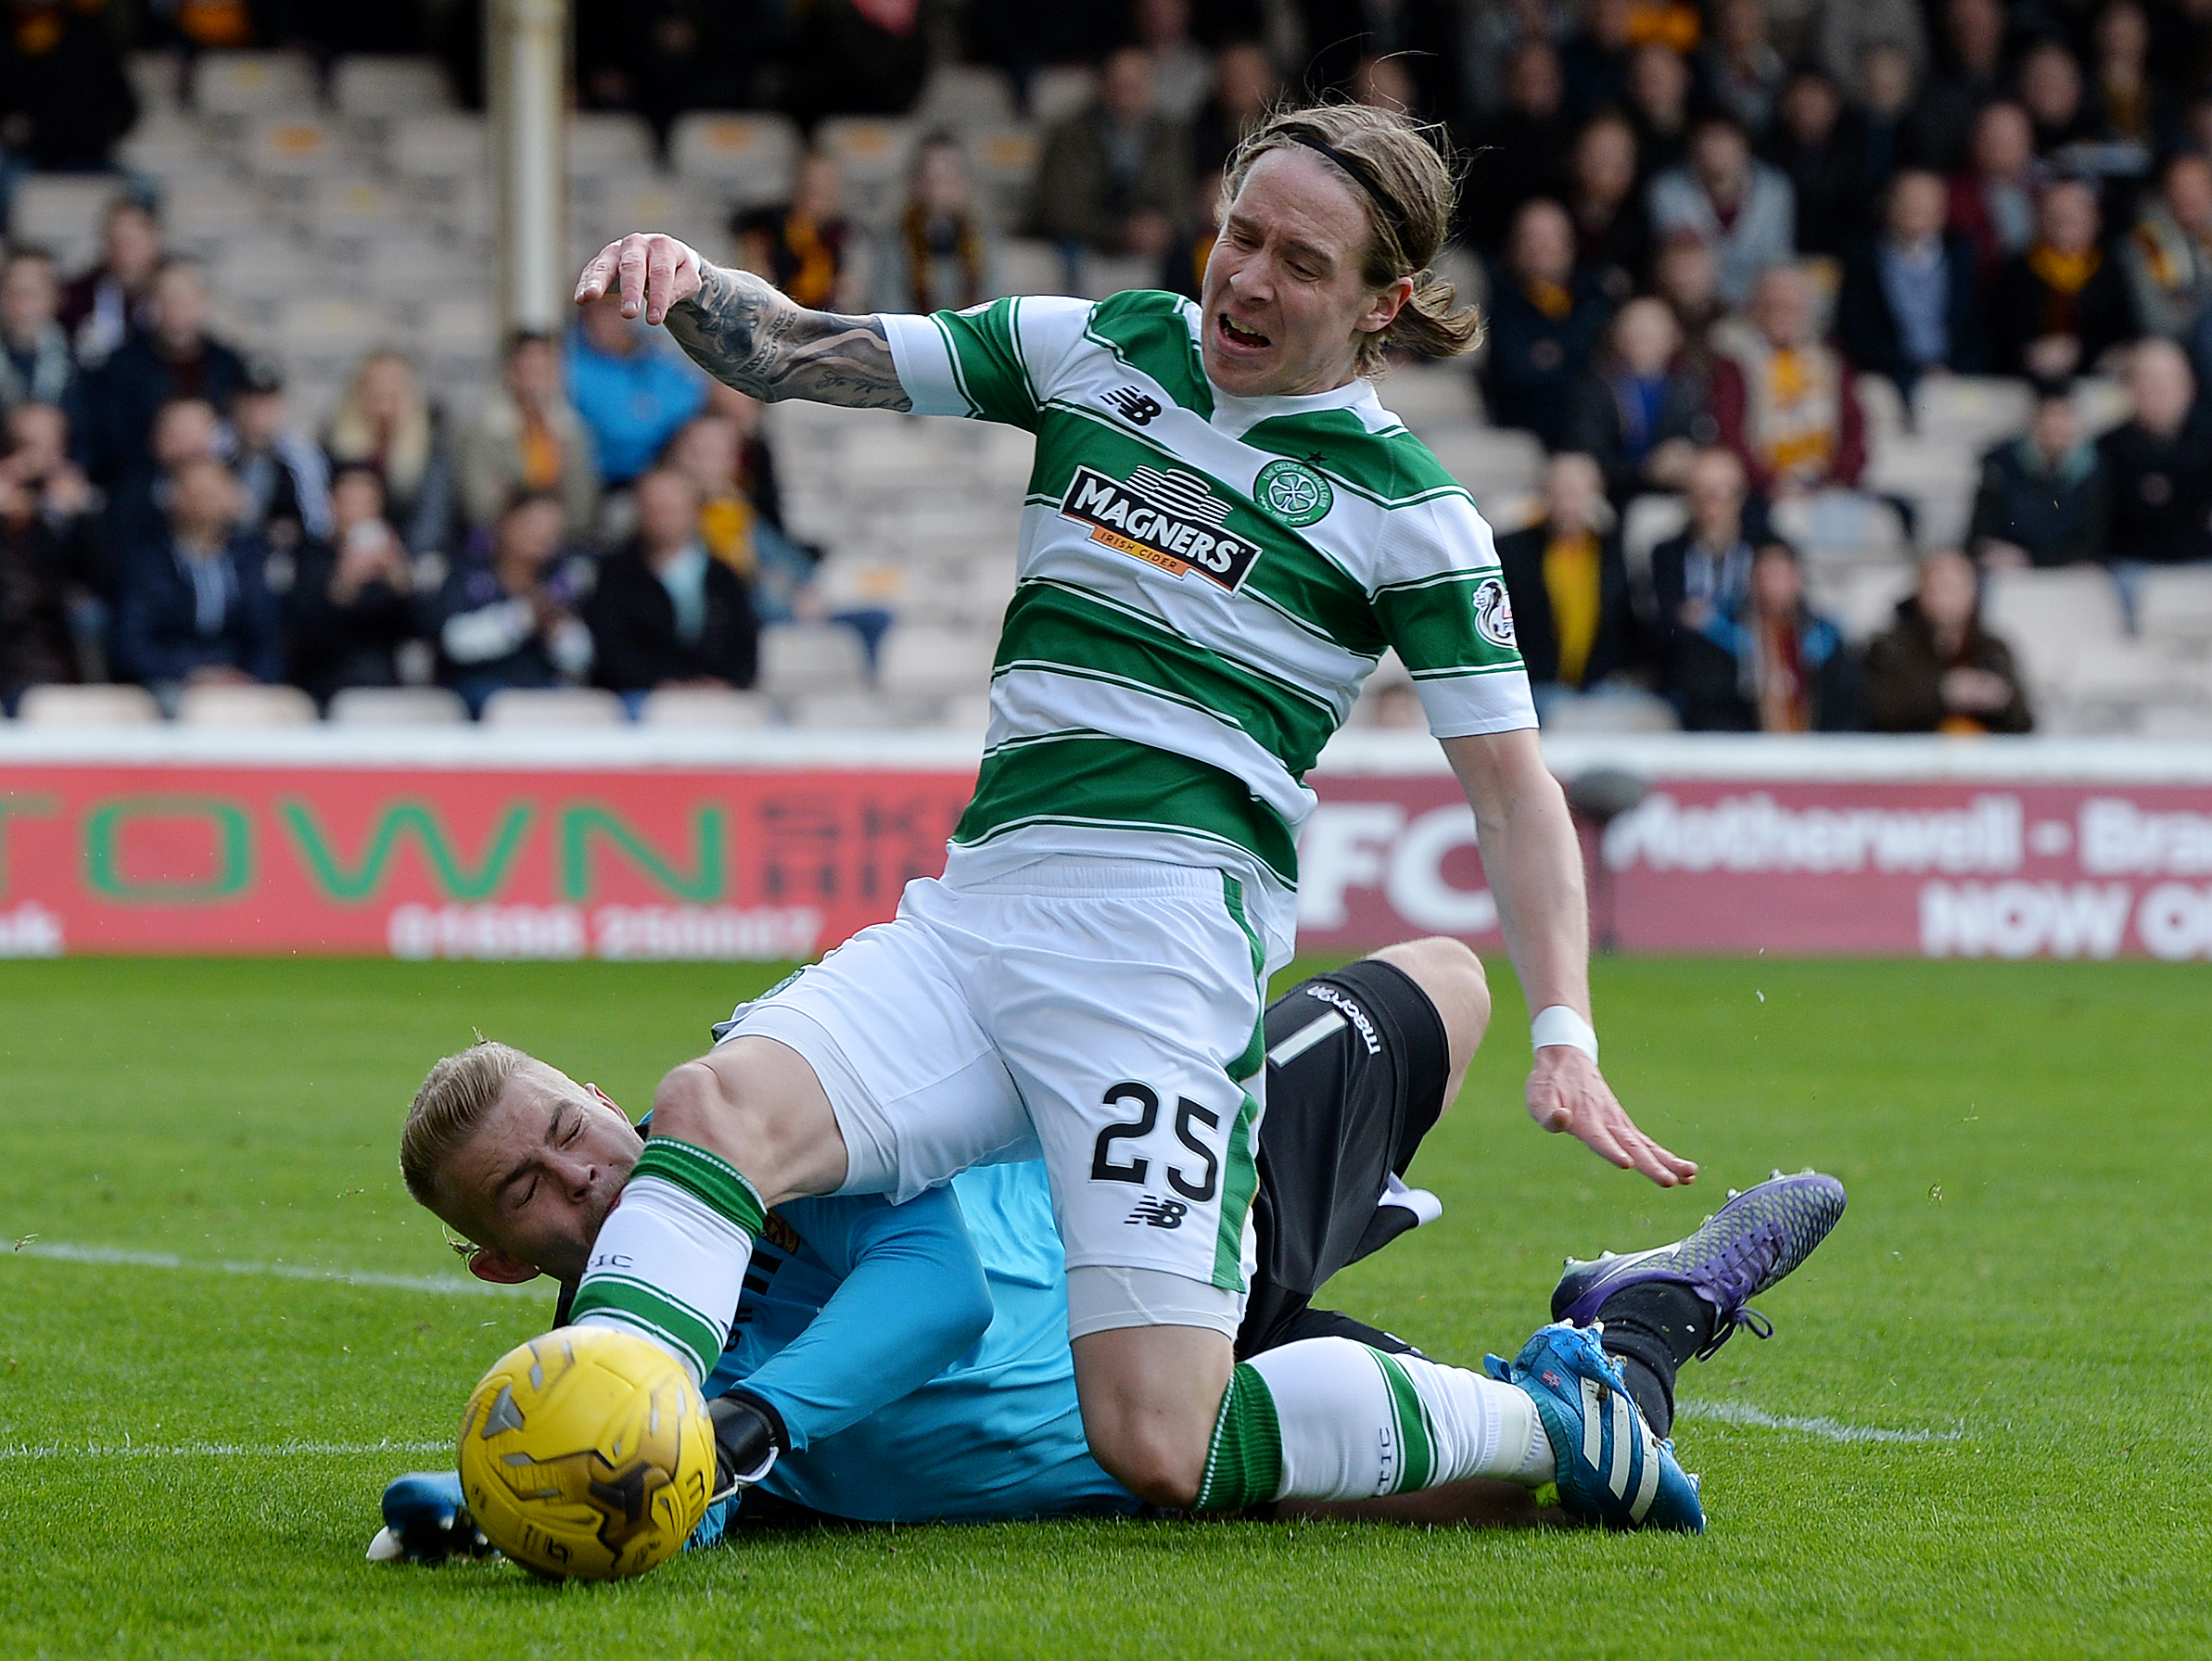 Stefan Johansen was named as Scotland's player of the year in 2015